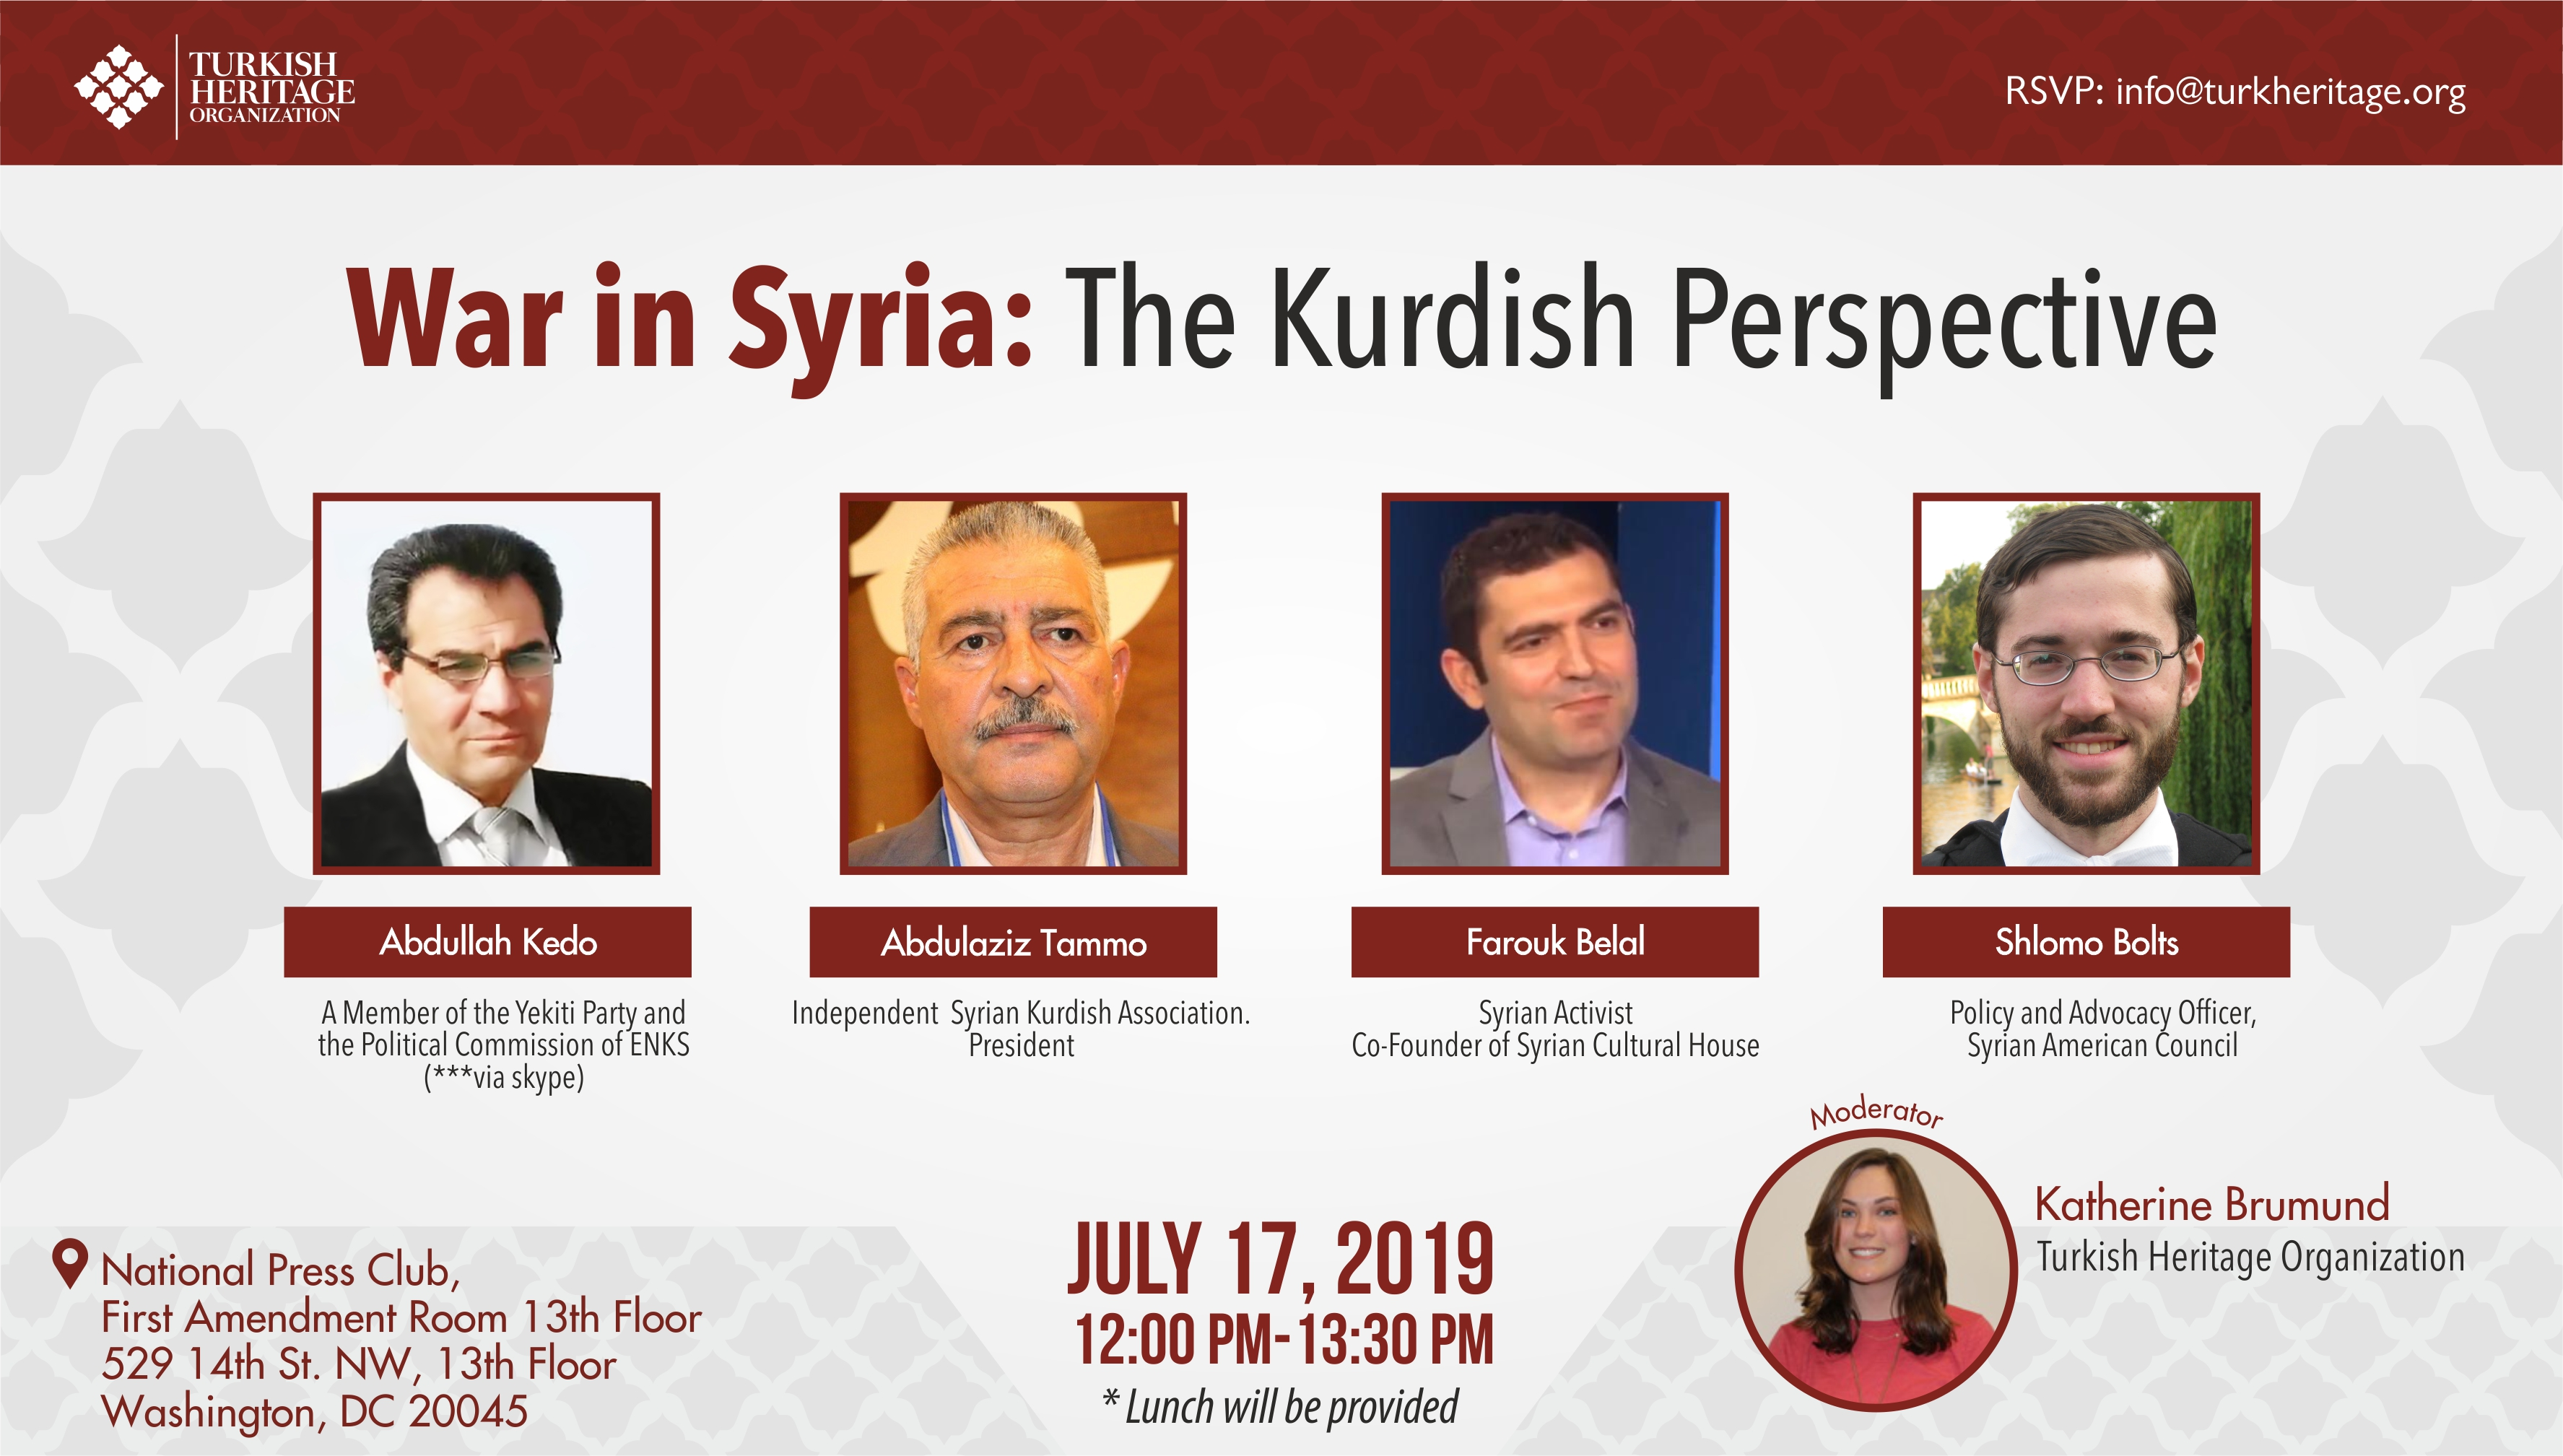 War in Syria: The Kurdish Perspective